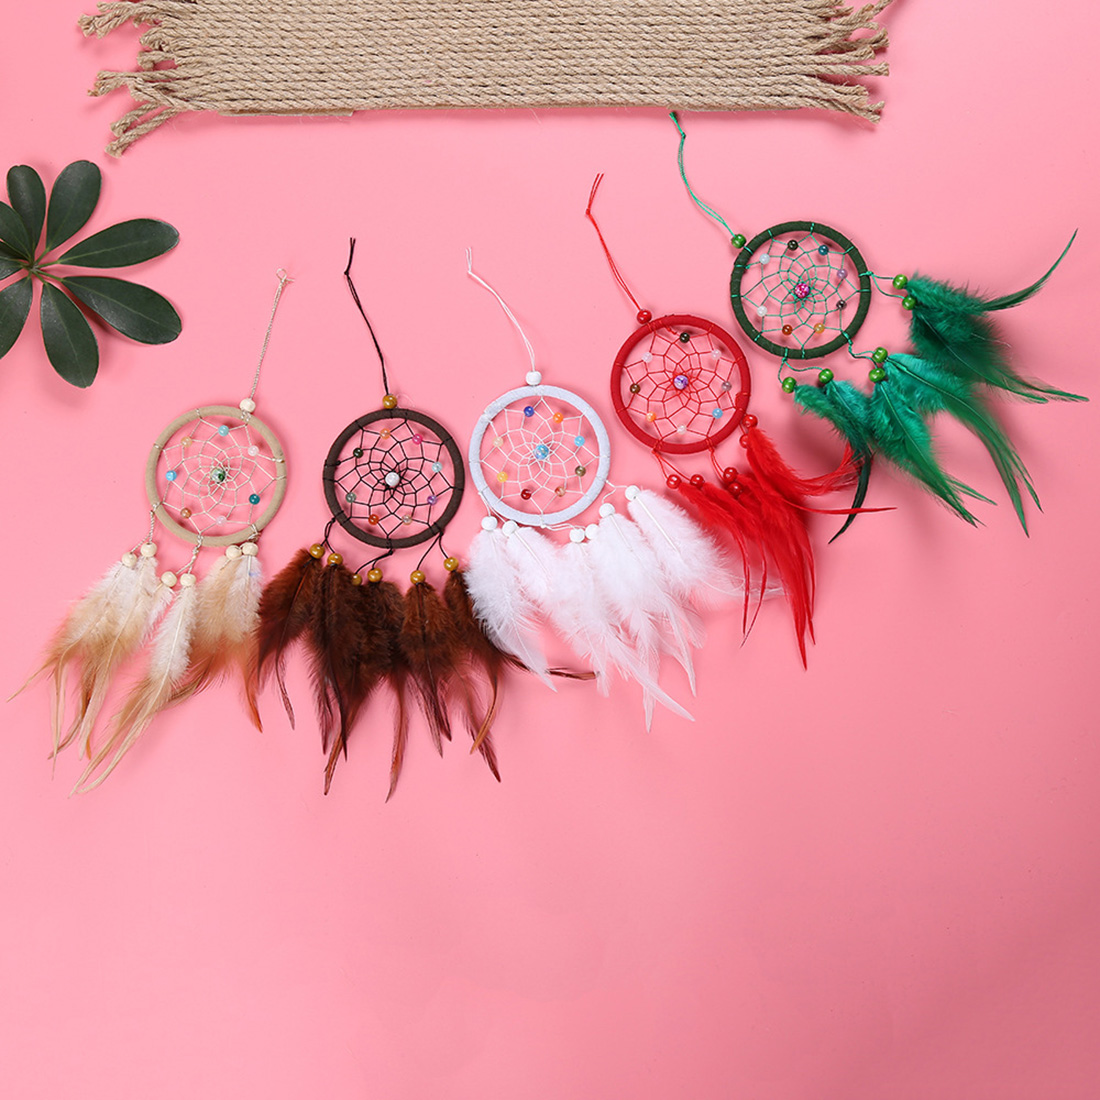 Carillon Extérieur Us 2 99 40 Off Mini Dreamcatcher Gift Handmade Dream Catcher Net With Feathers Wall Car Hanging Decoration Ornament Carillon A Vent Exterieur In